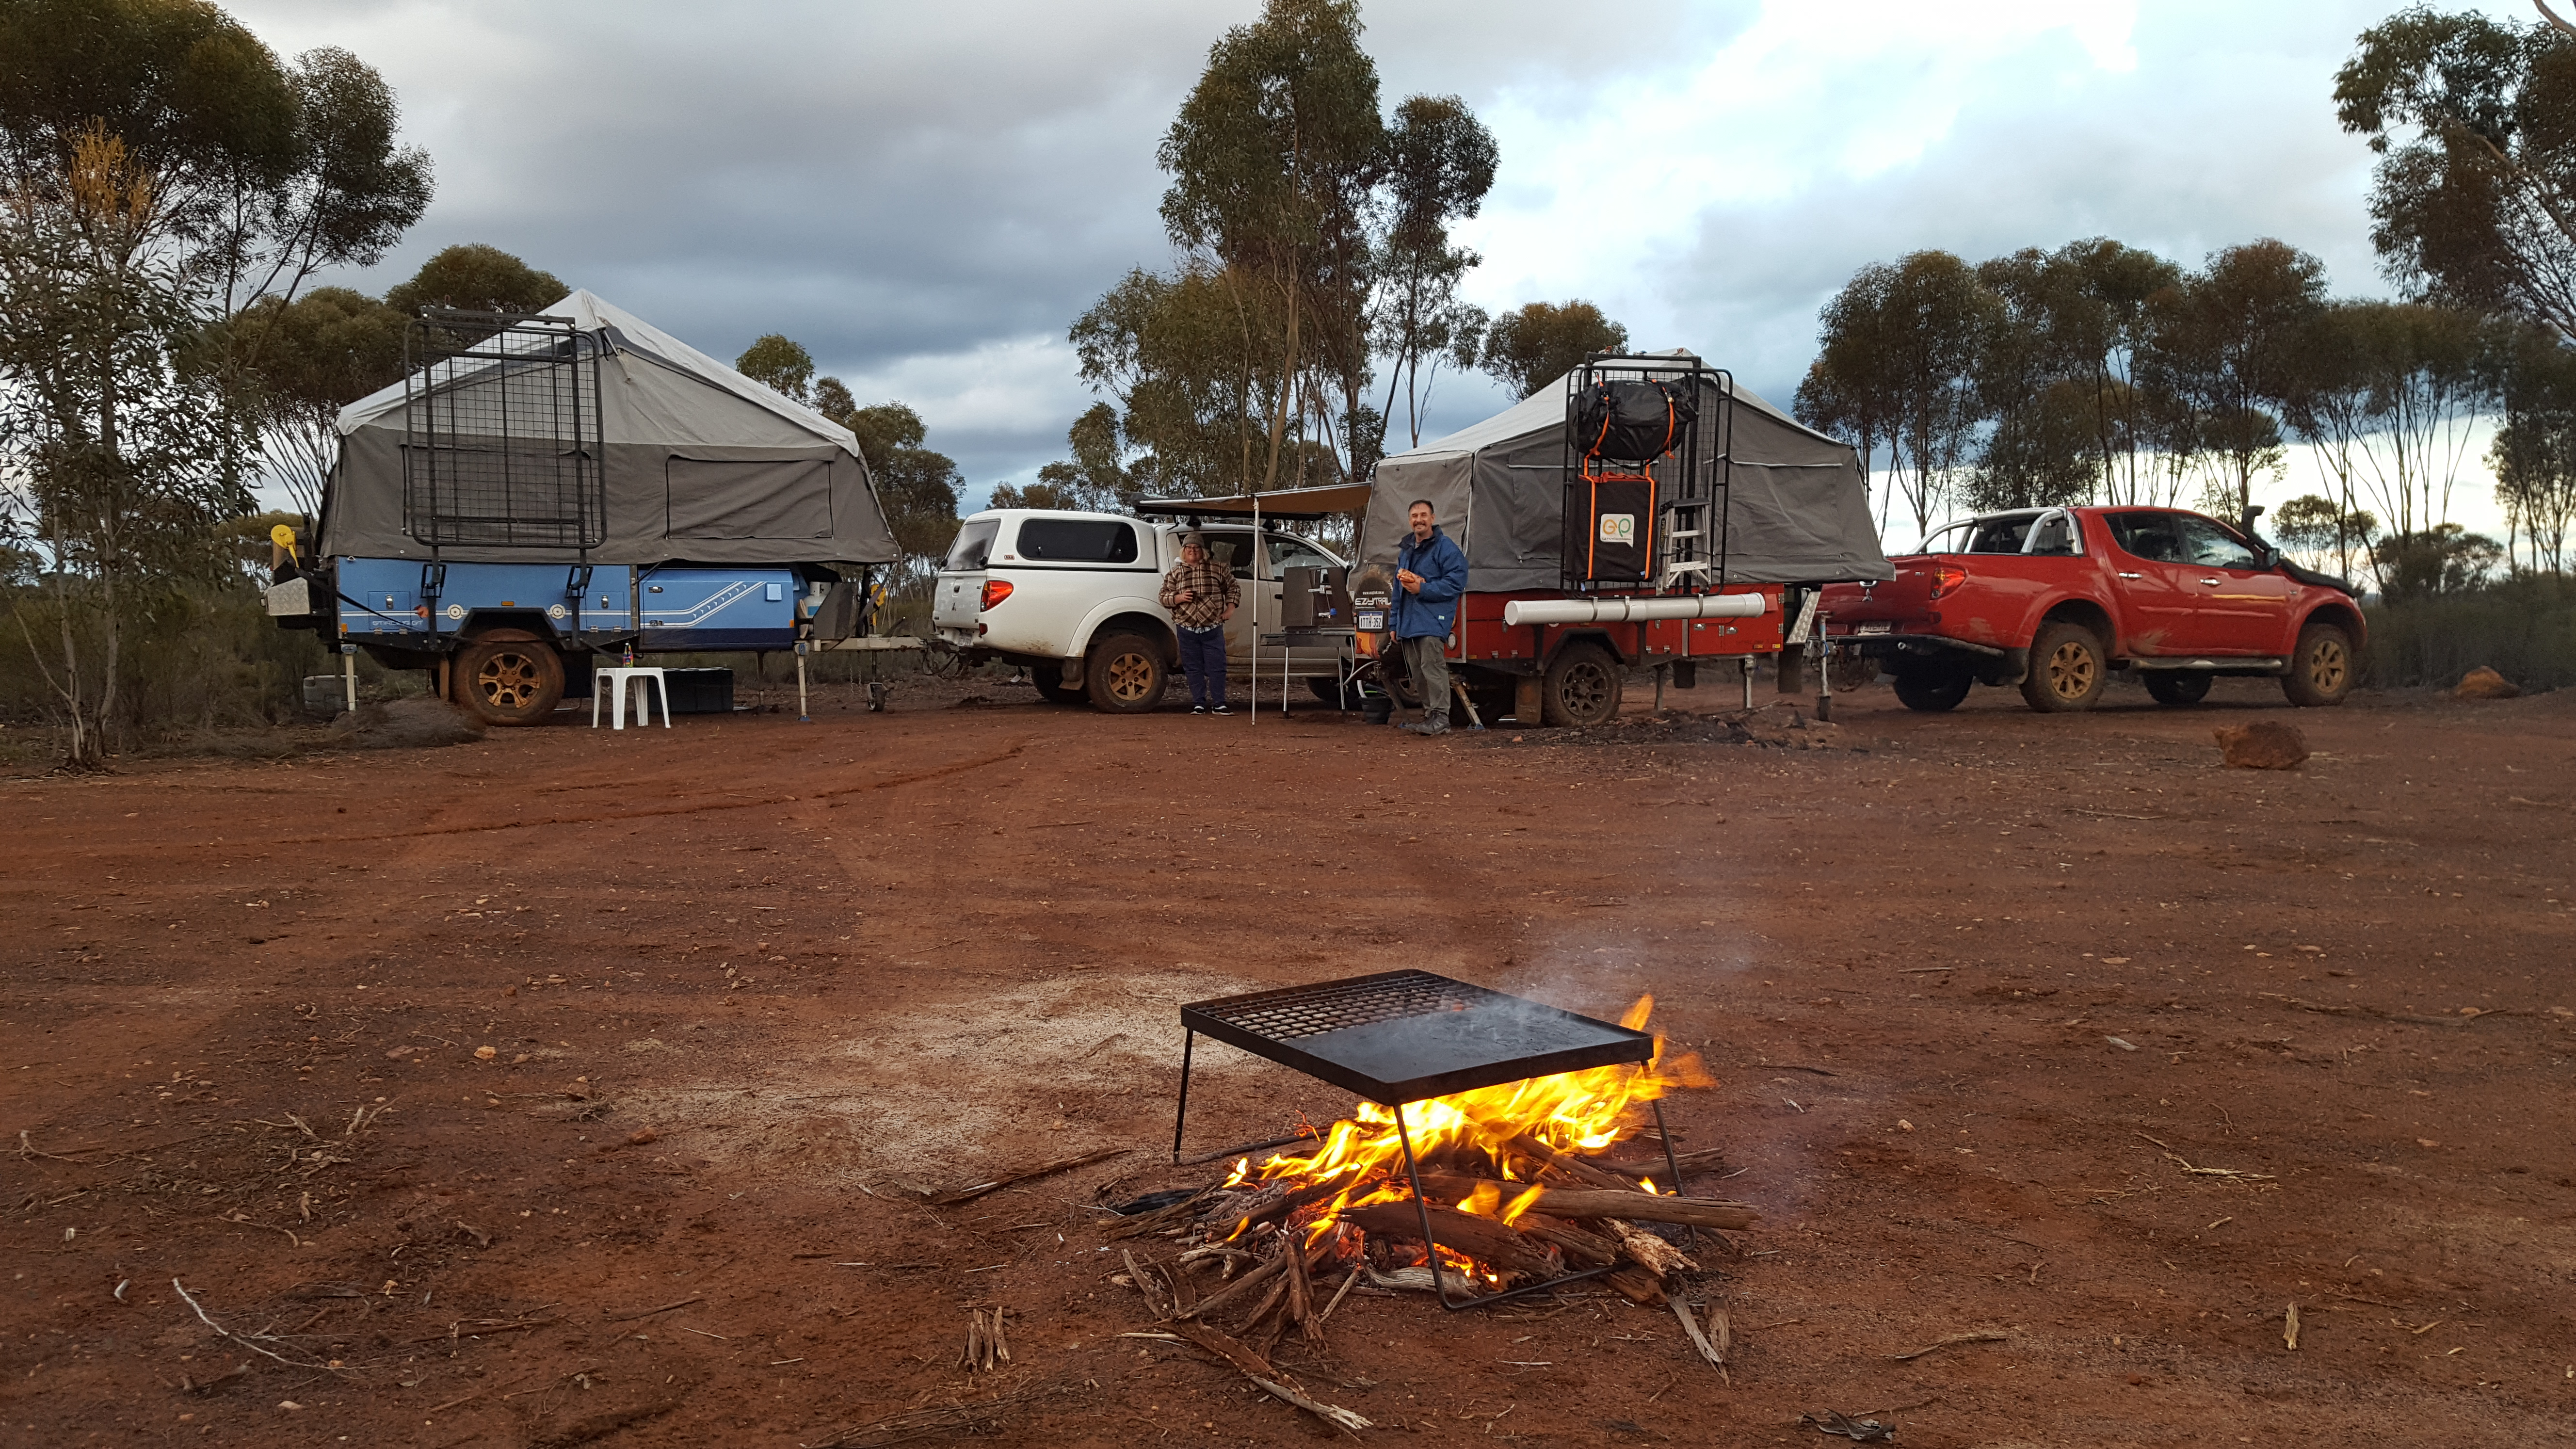 Camp ground before the storm